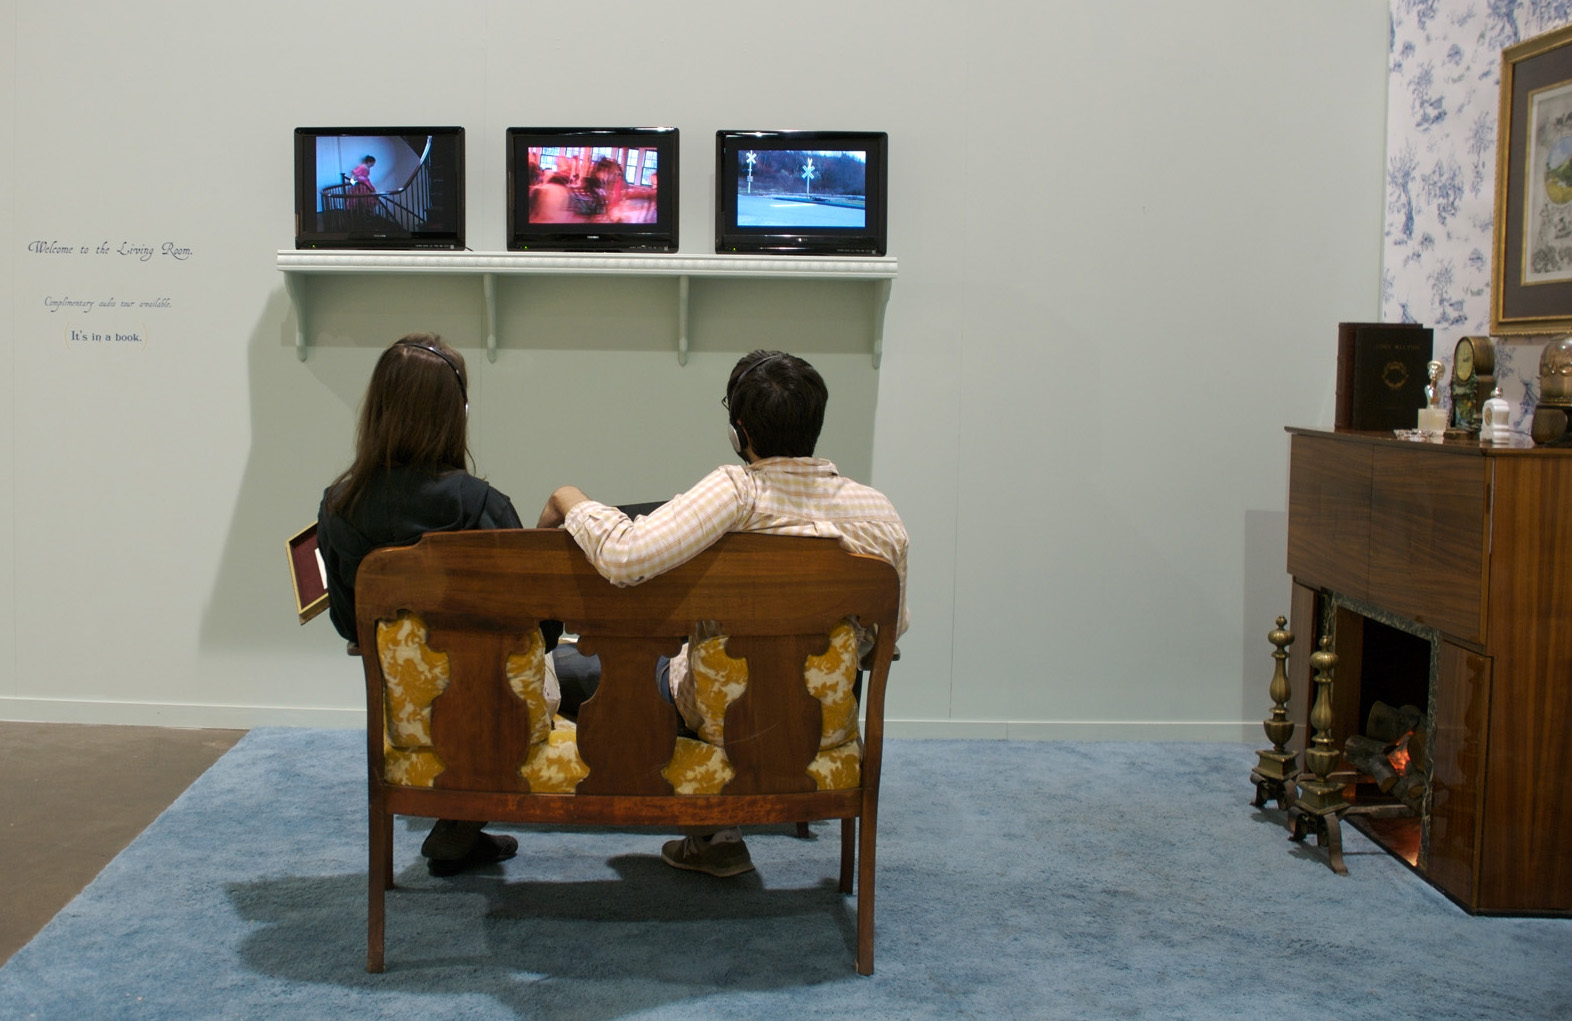 View of videos